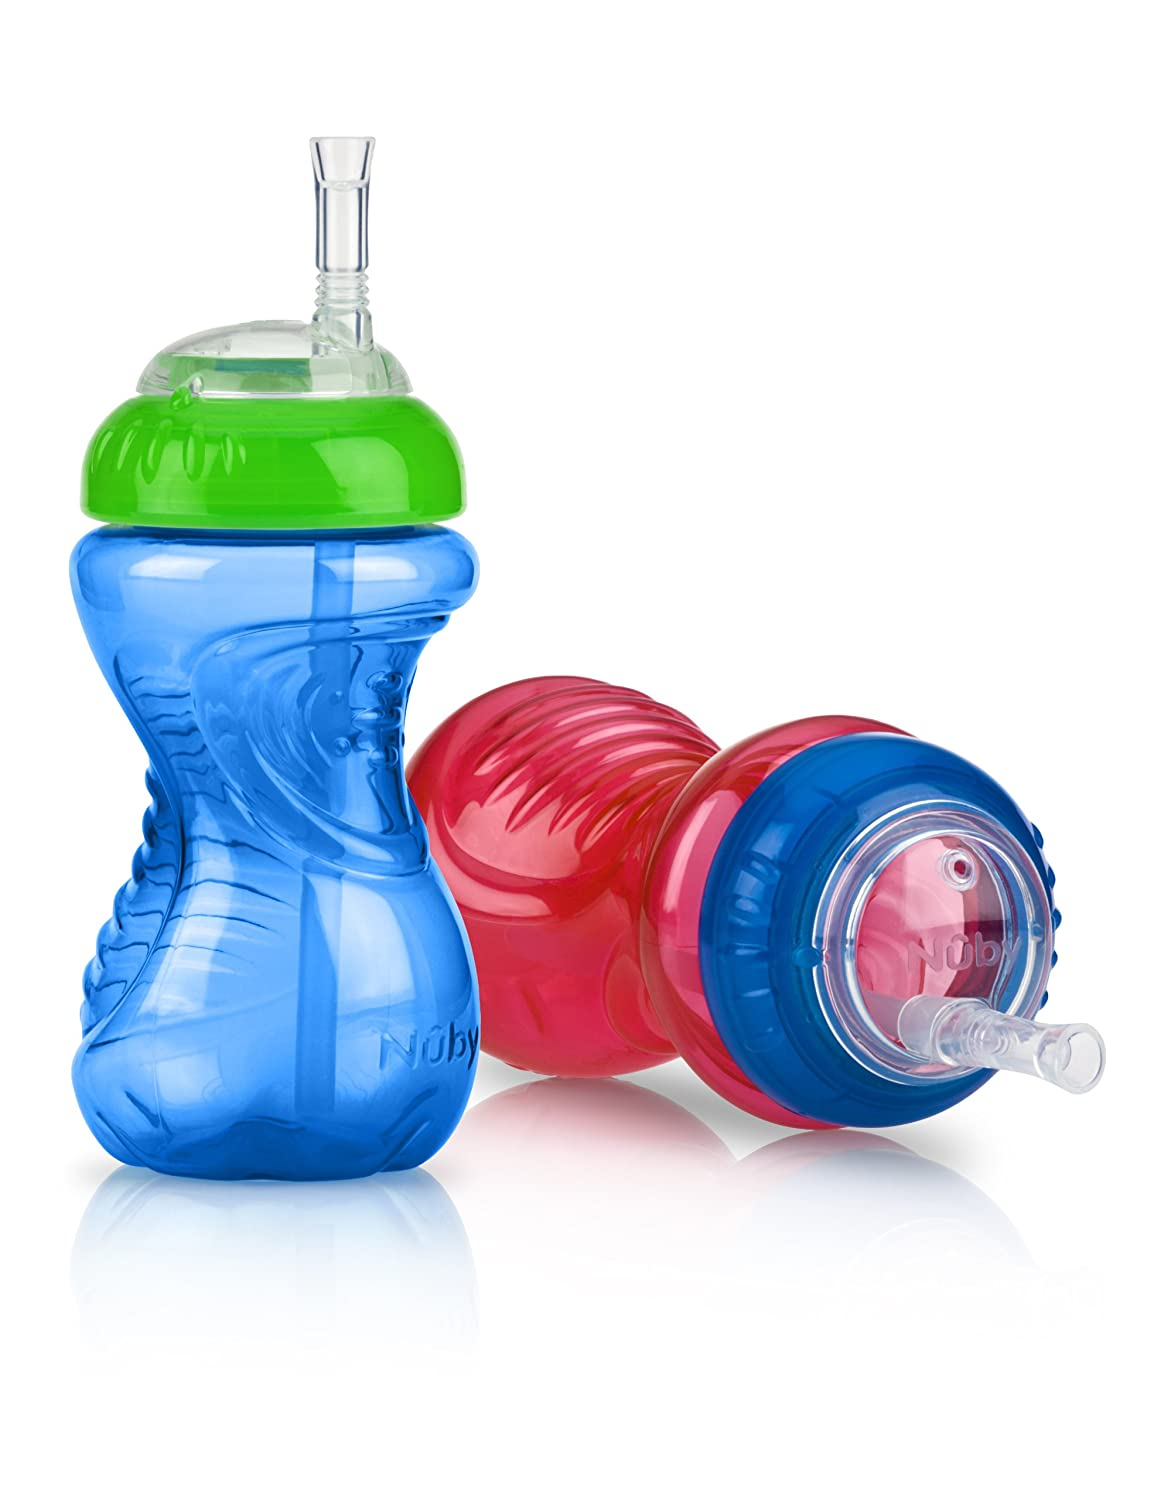 Nuby Baby Toddler Sippy Straw Drinking Water Bottle Safe Spill Proof